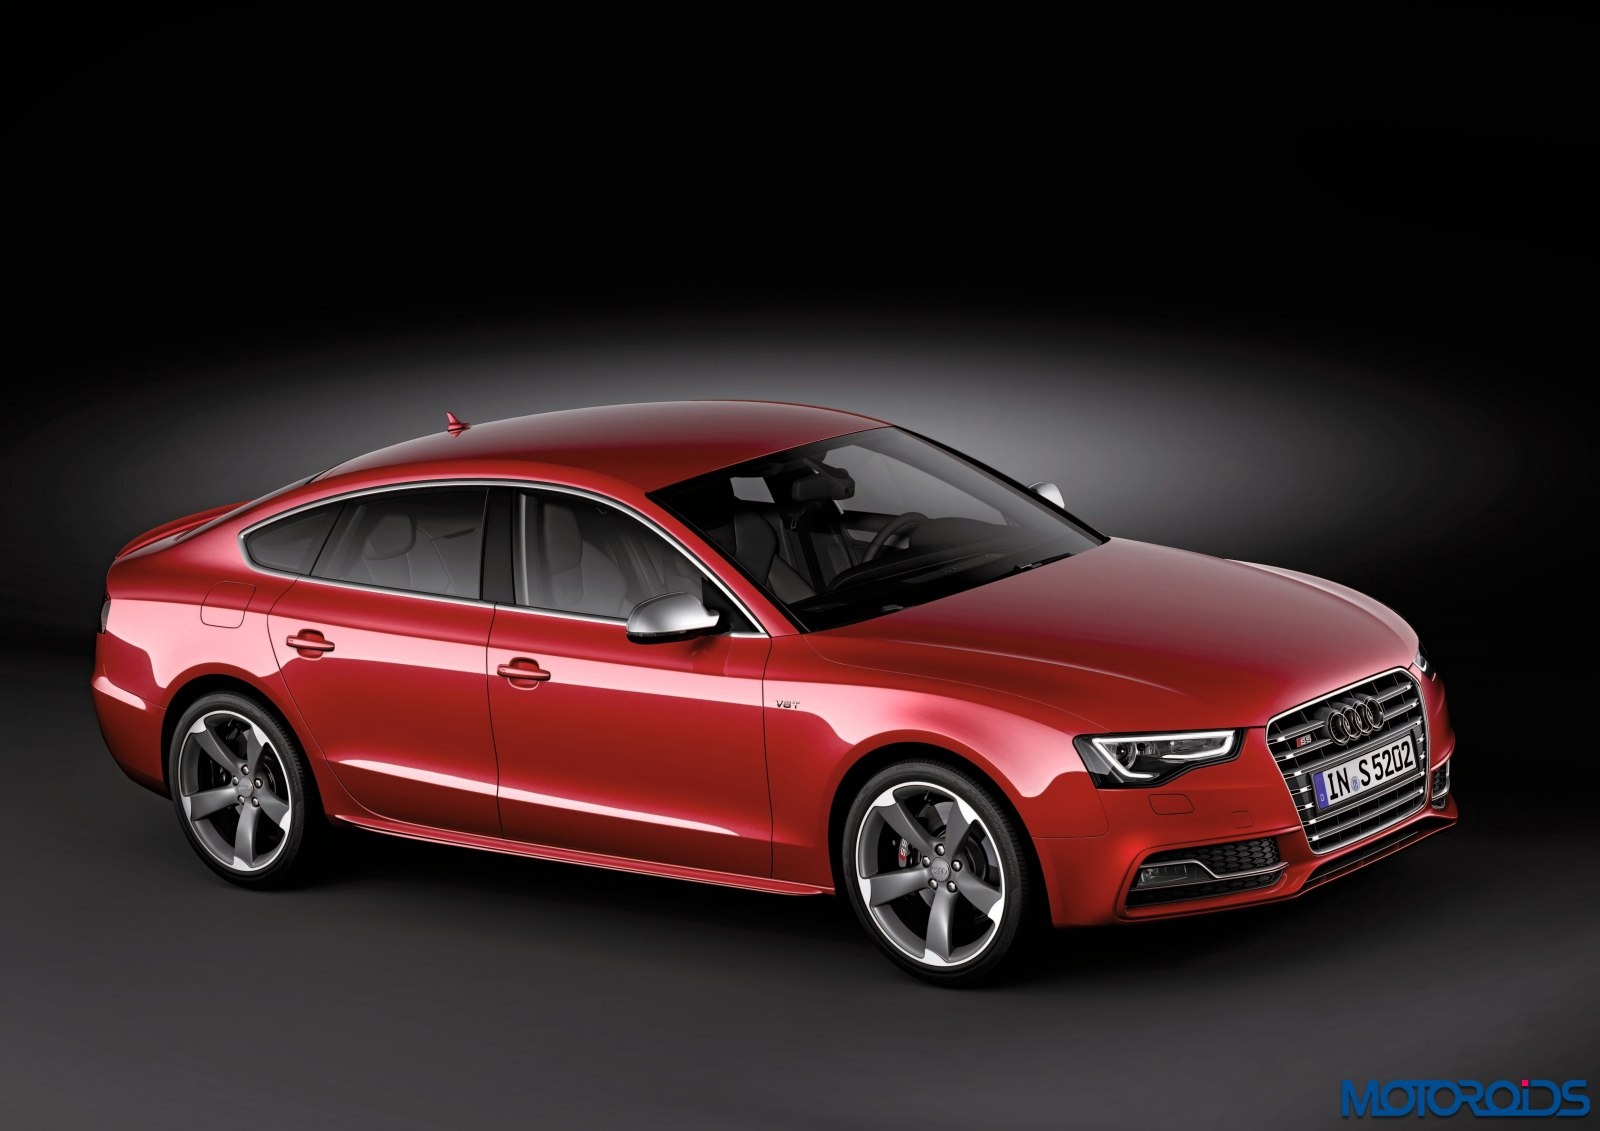 Audi India Launches The S5 Sportback Priced Inr 62 95 Lakh Ex Showroom Motoroids